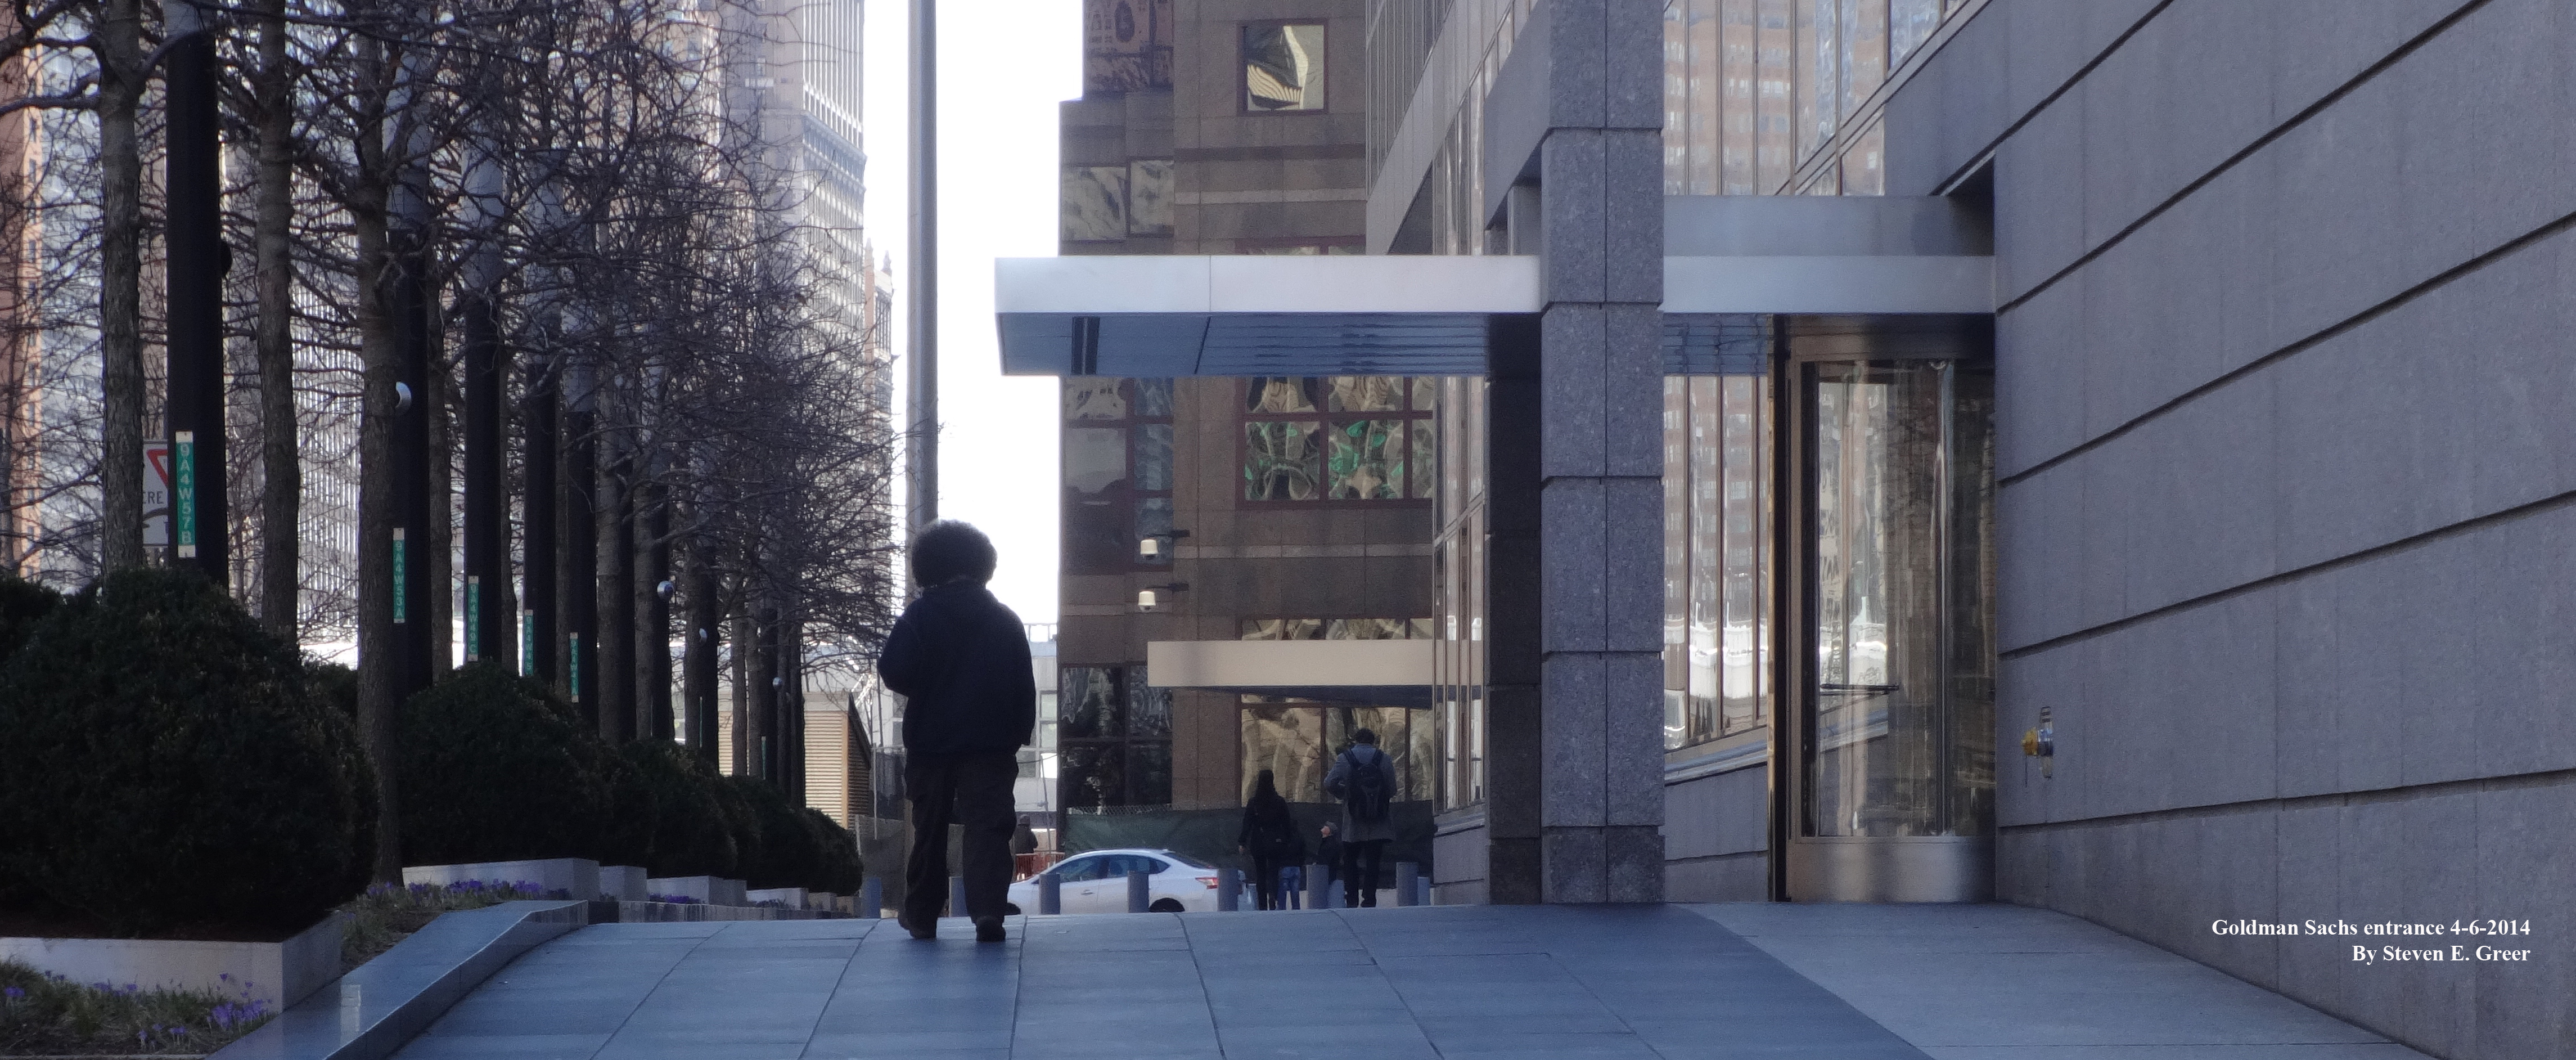 Goldman Sachs entrance with Afro